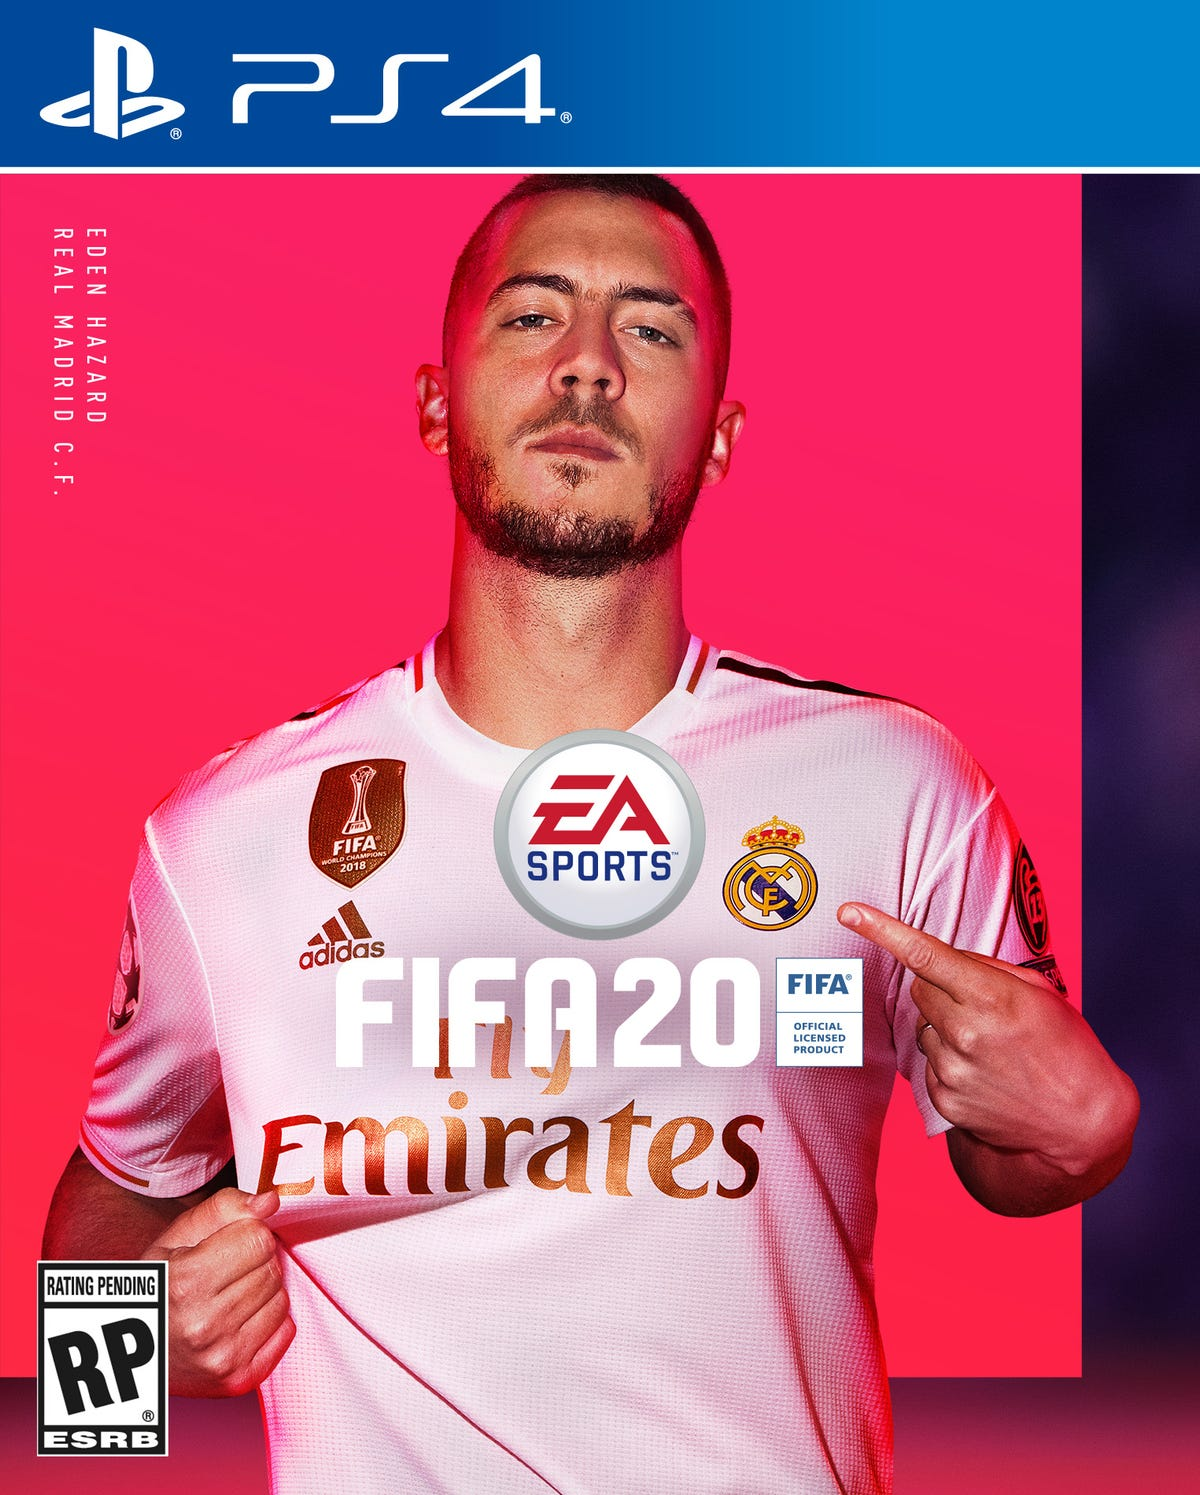 info for 8203b 3c1db Eden Hazard: FIFA 20 cover 'like a dream' for new Real ...